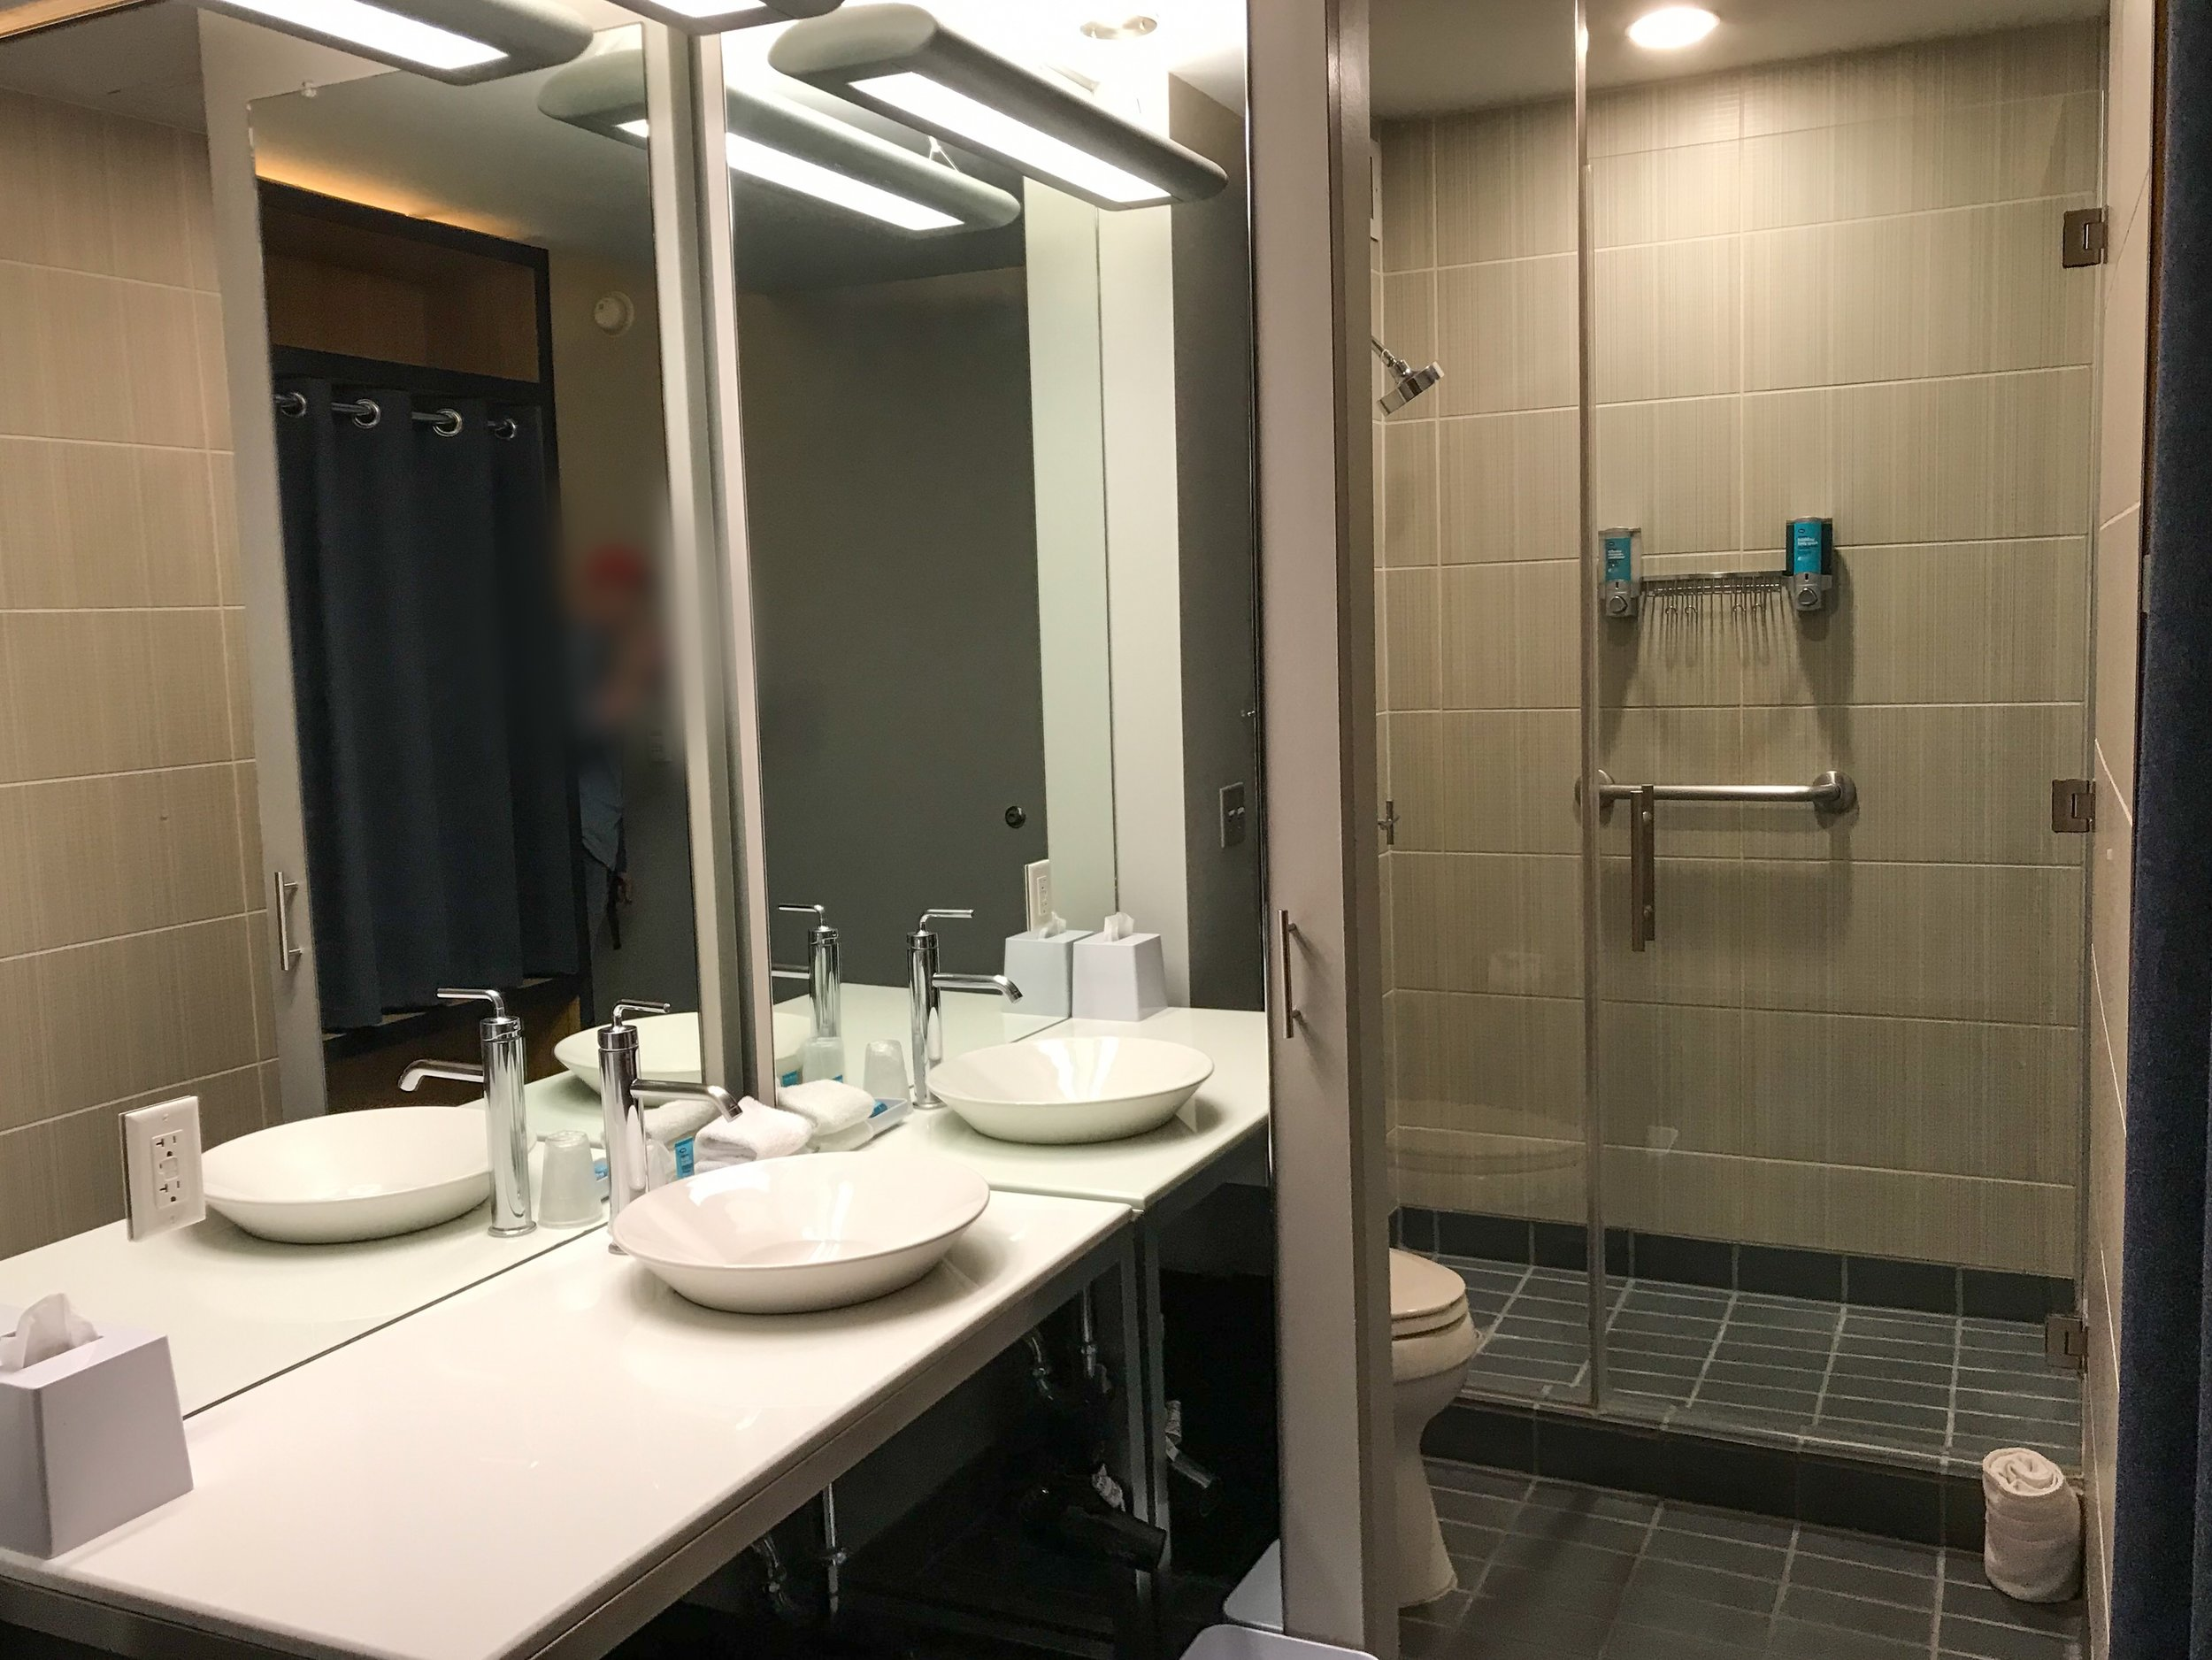 The bathroom only had one sink, but had a large counter.